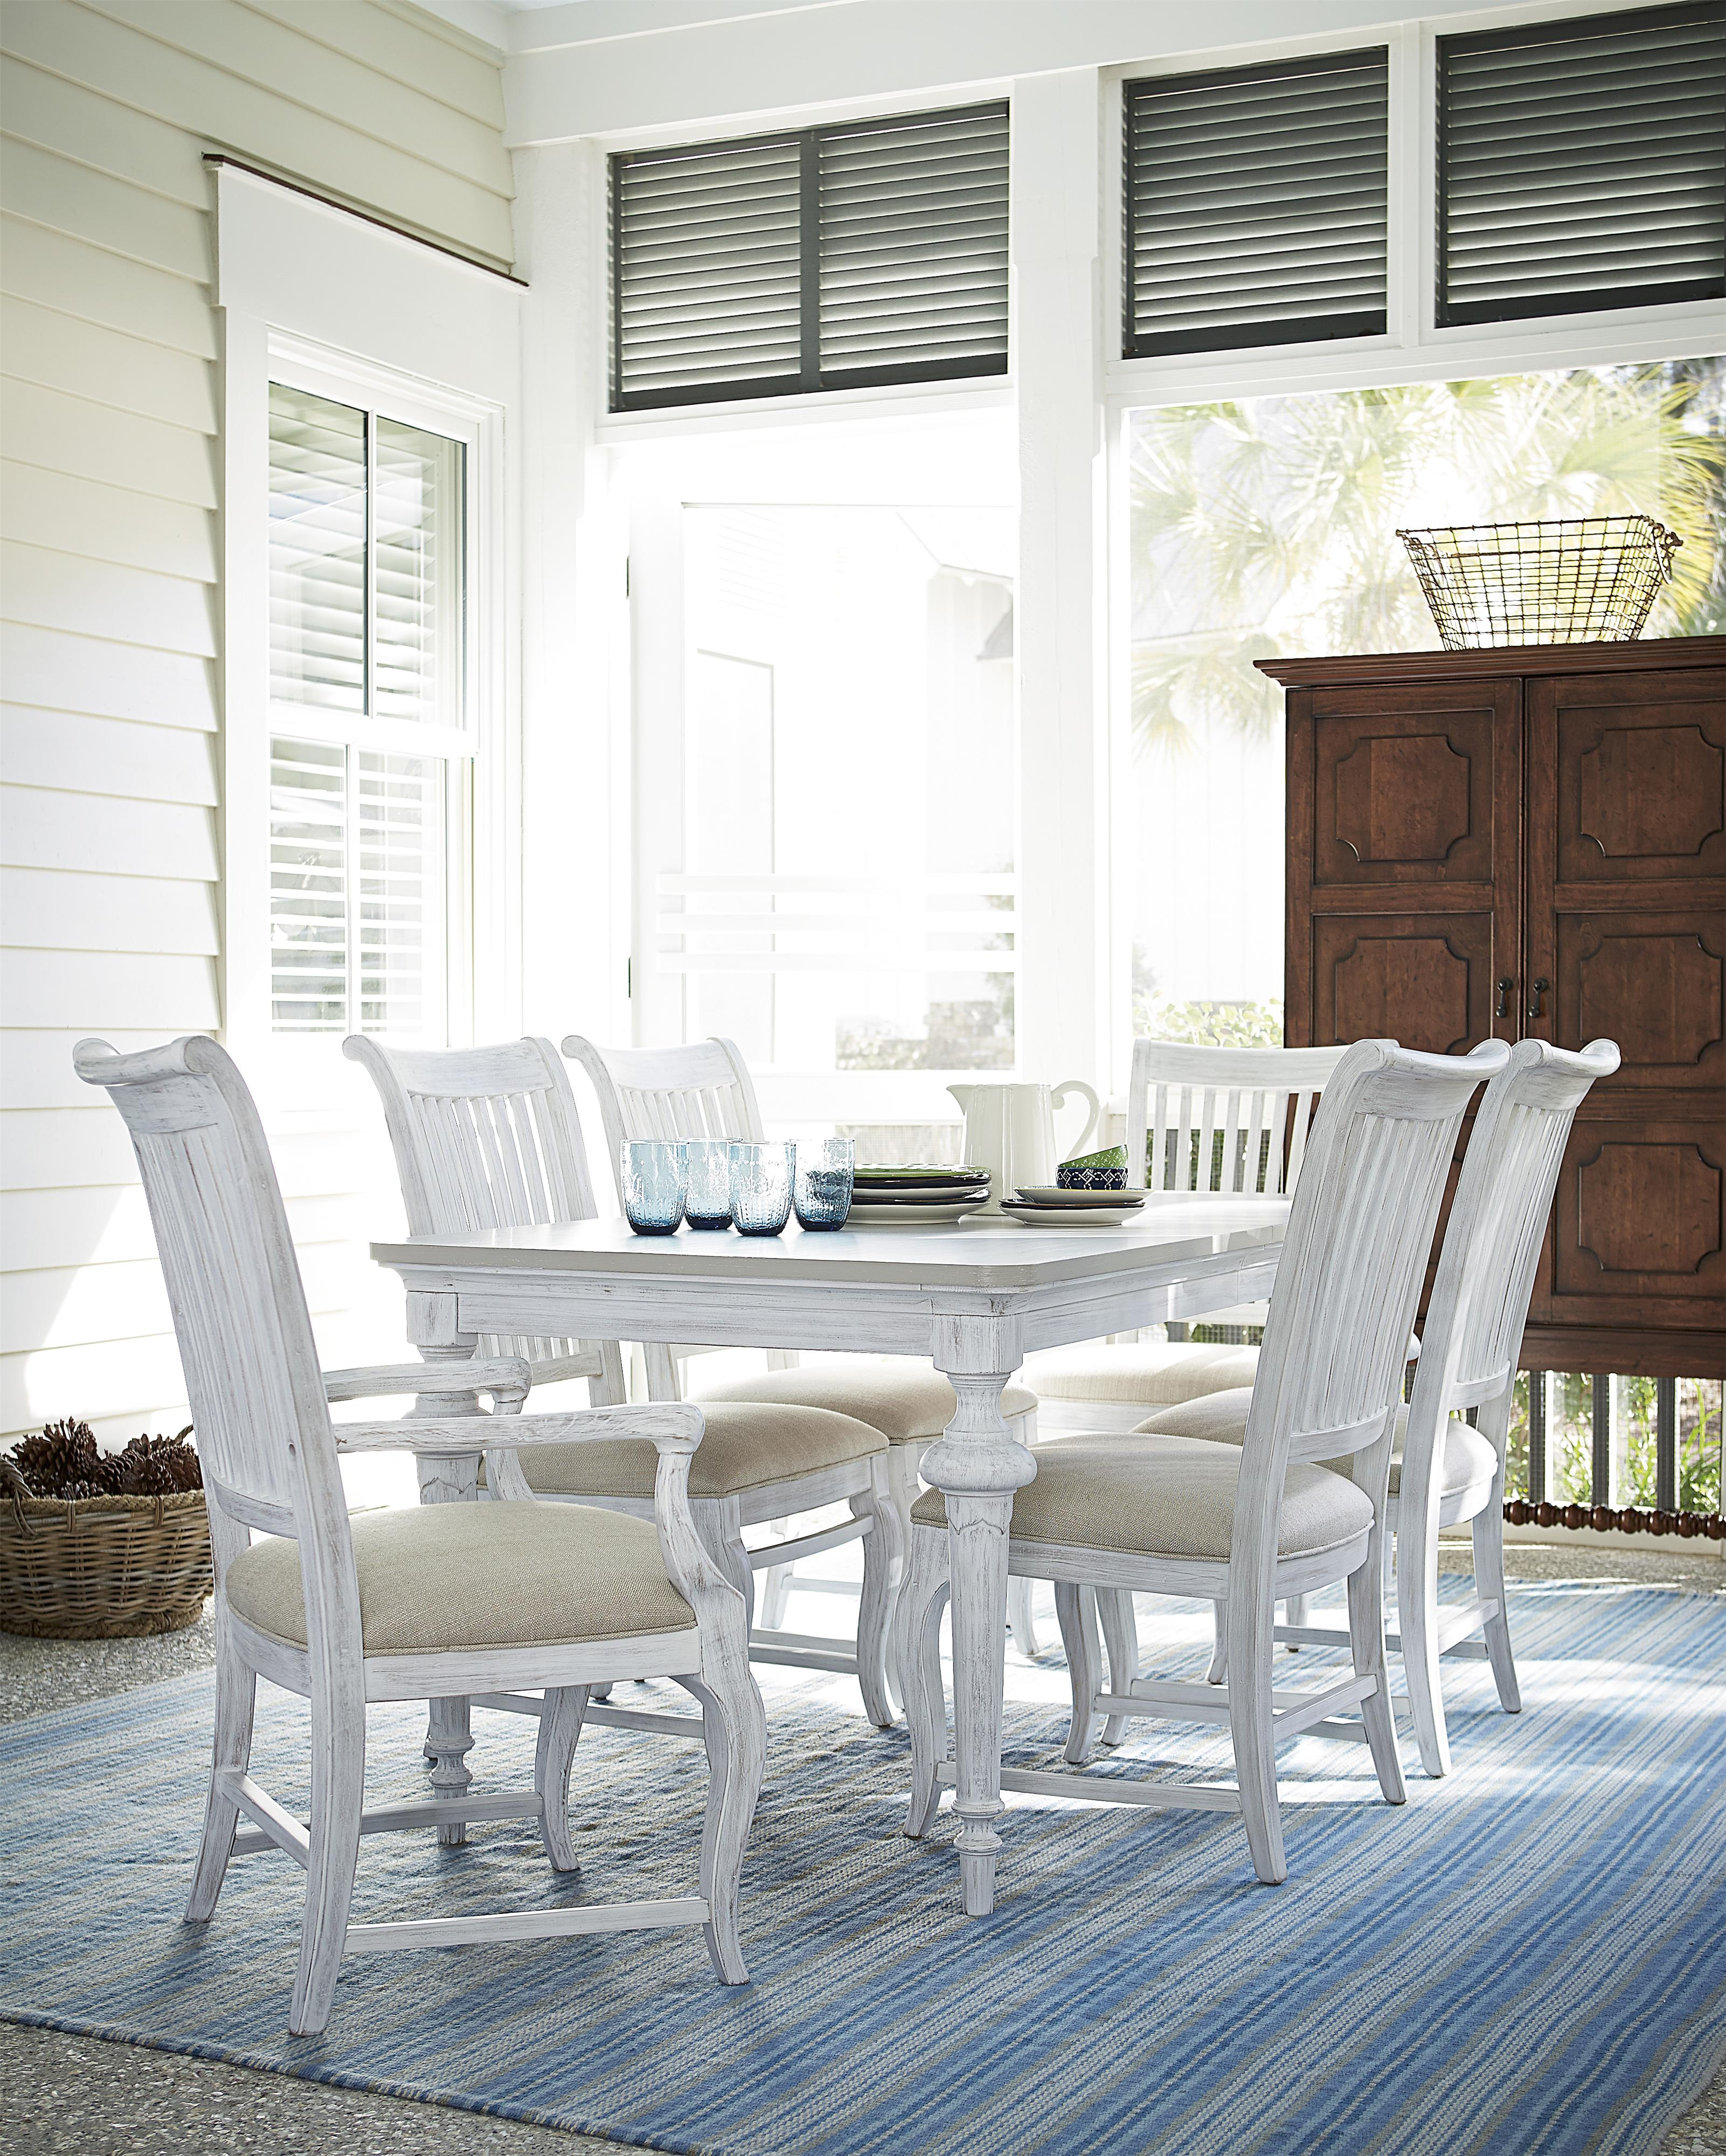 Paula Deen by Universal Dogwood Formal Dining Room Group - Item Number: 597 Dining Room Group 1